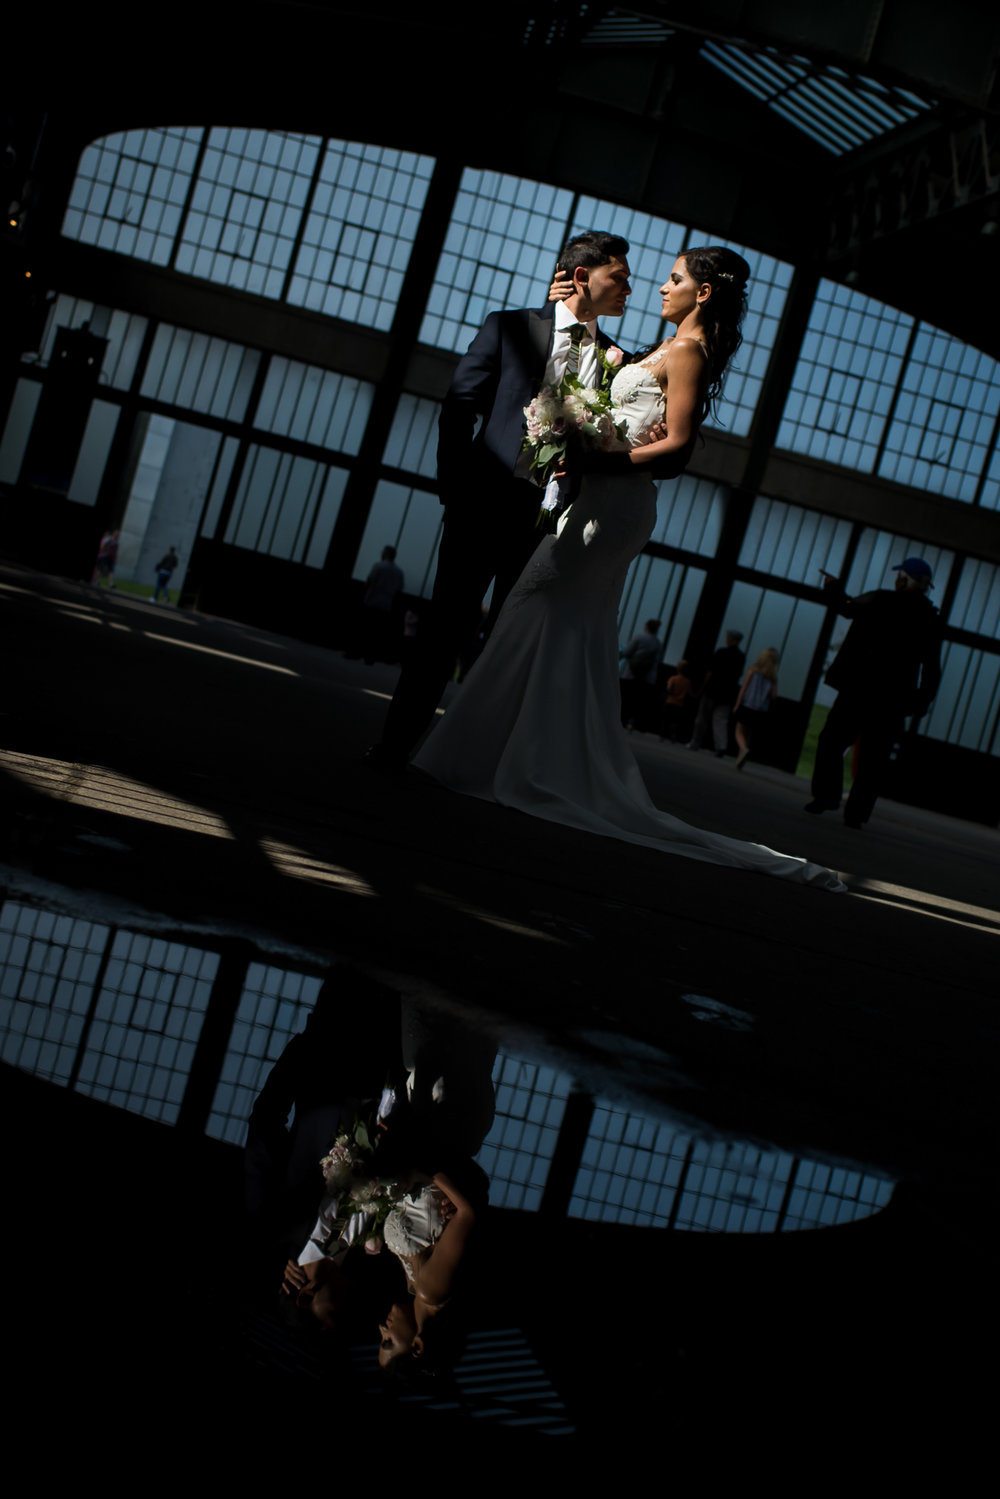 Stefy Hilmer Photography-artsy portrait of bride and groom.jpg